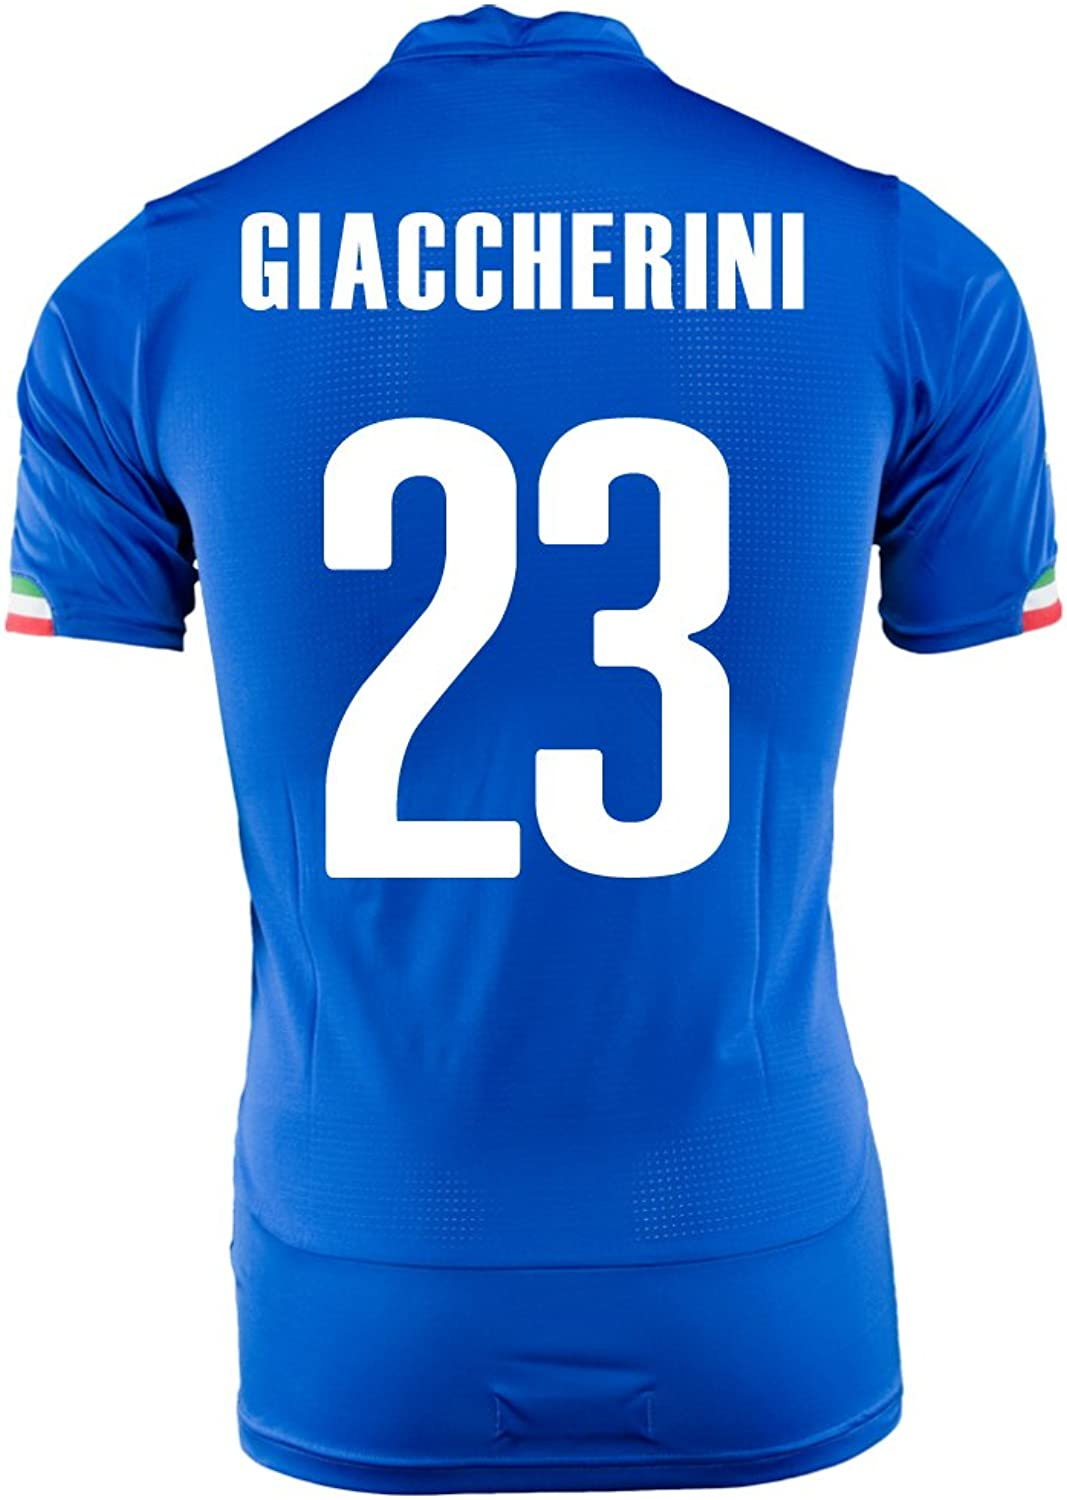 PUMA GIACCHERINI  23 ITALY HOME JERSEY WORLD CUP 2014 (M)